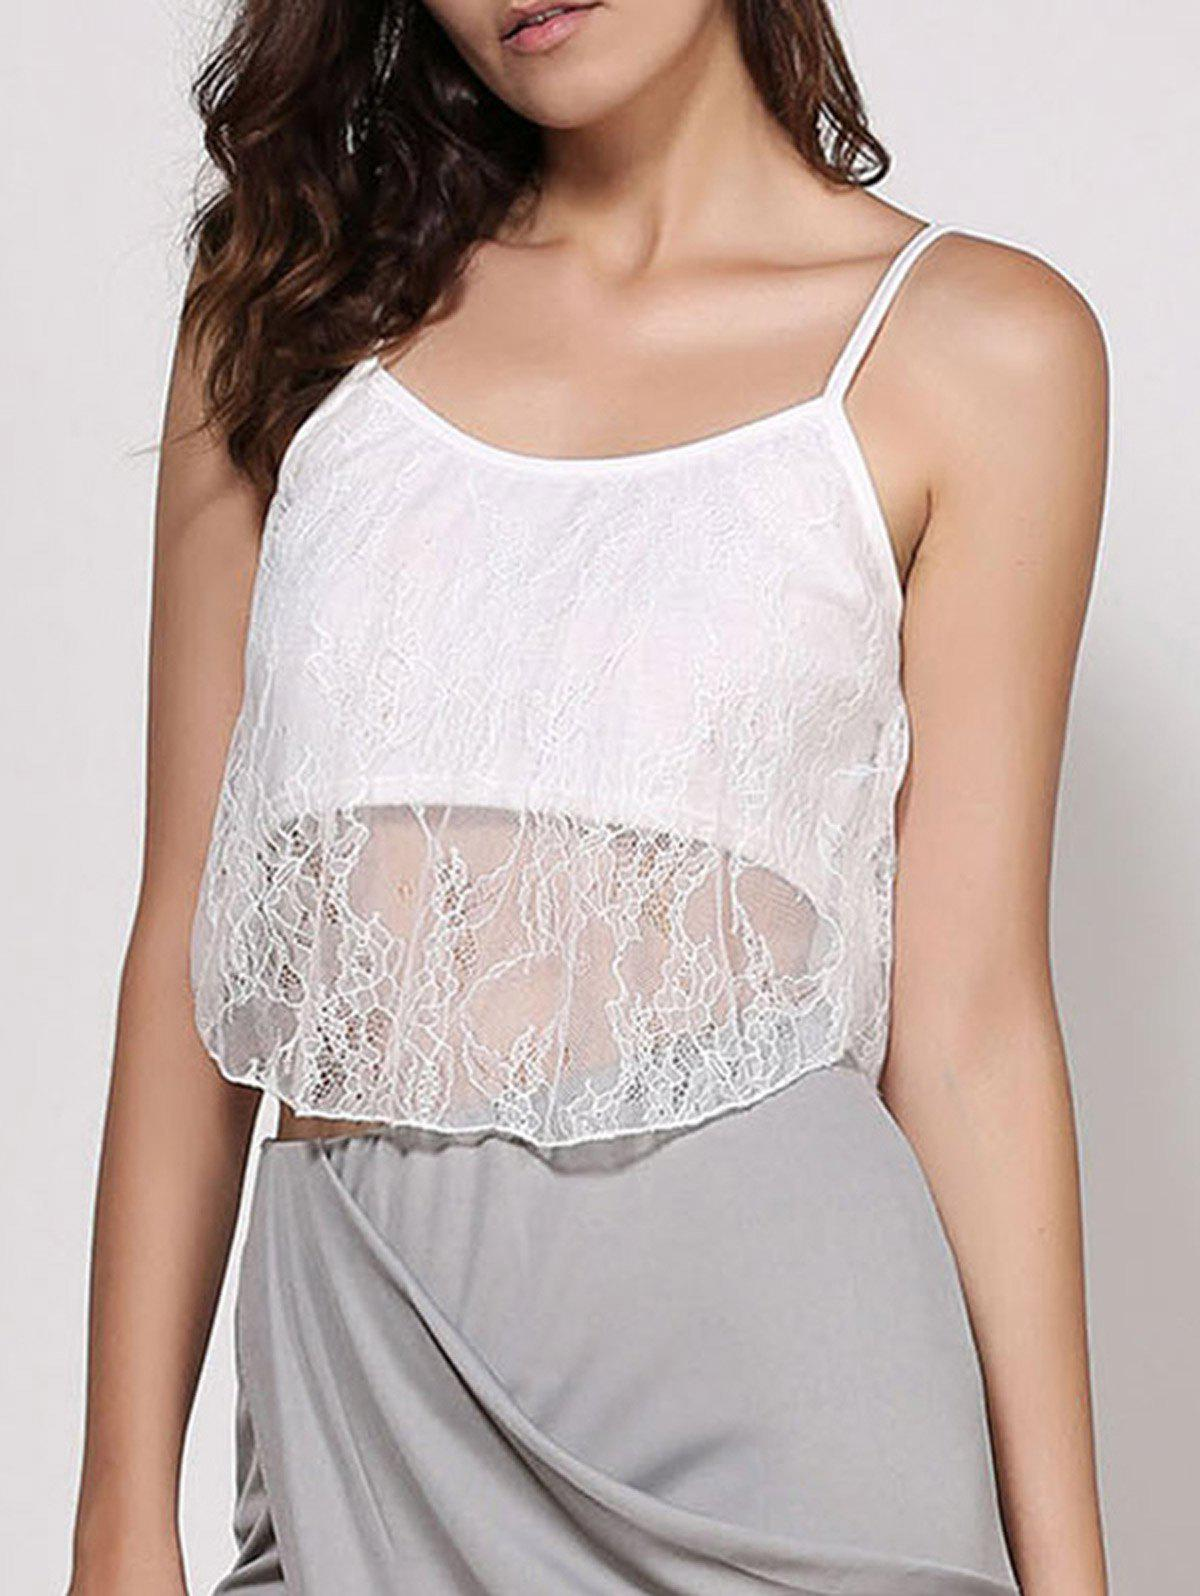 Spaghetti Strap White Lace Crop Top - WHITE L